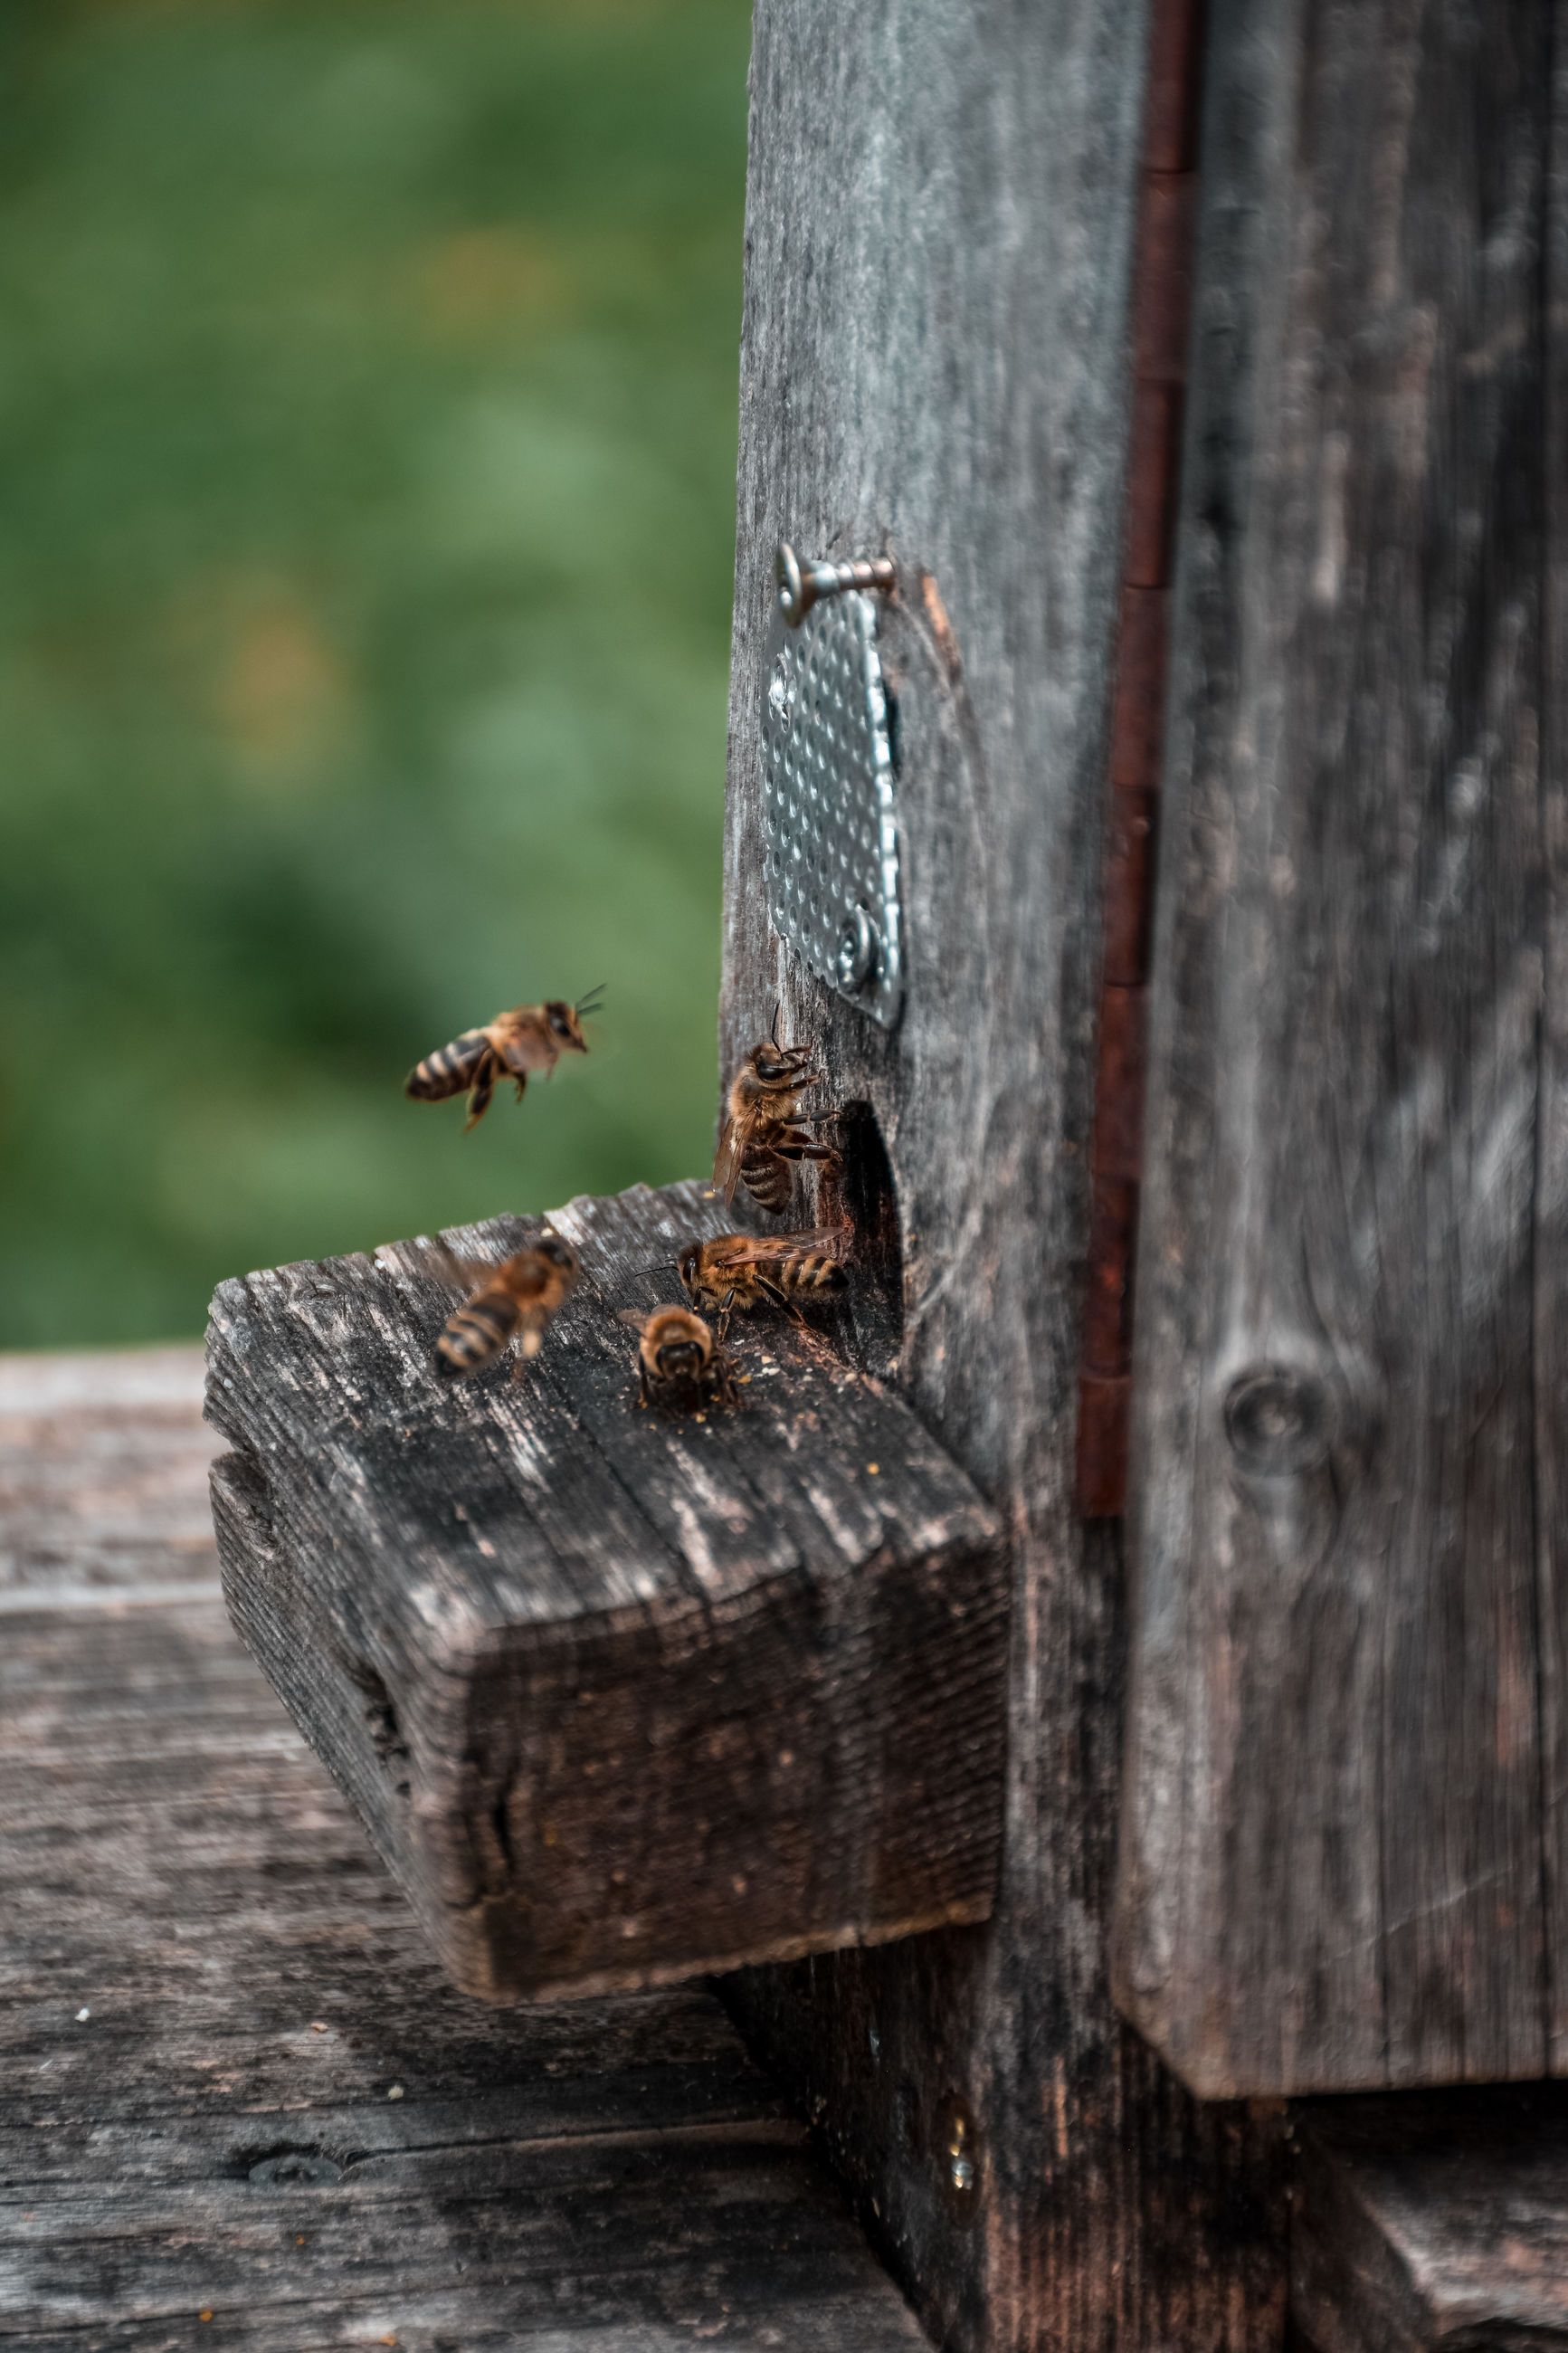 Bees at the entry of their beehive